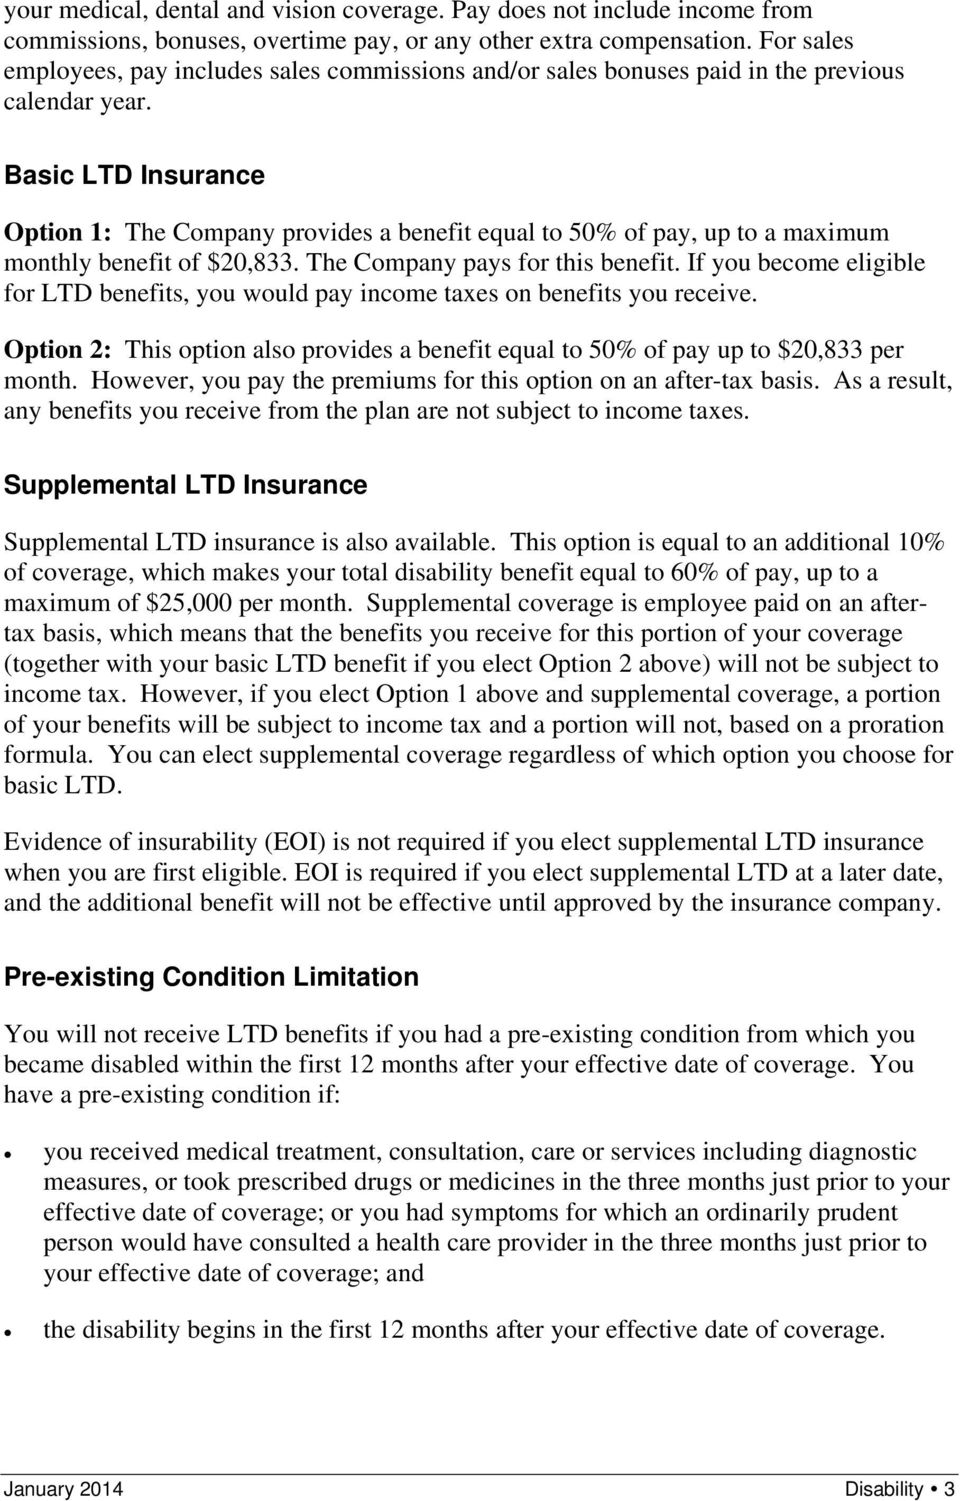 Basic LTD Insurance Option 1: The Company provides a benefit equal to 50% of pay, up to a maximum monthly benefit of $20,833. The Company pays for this benefit.